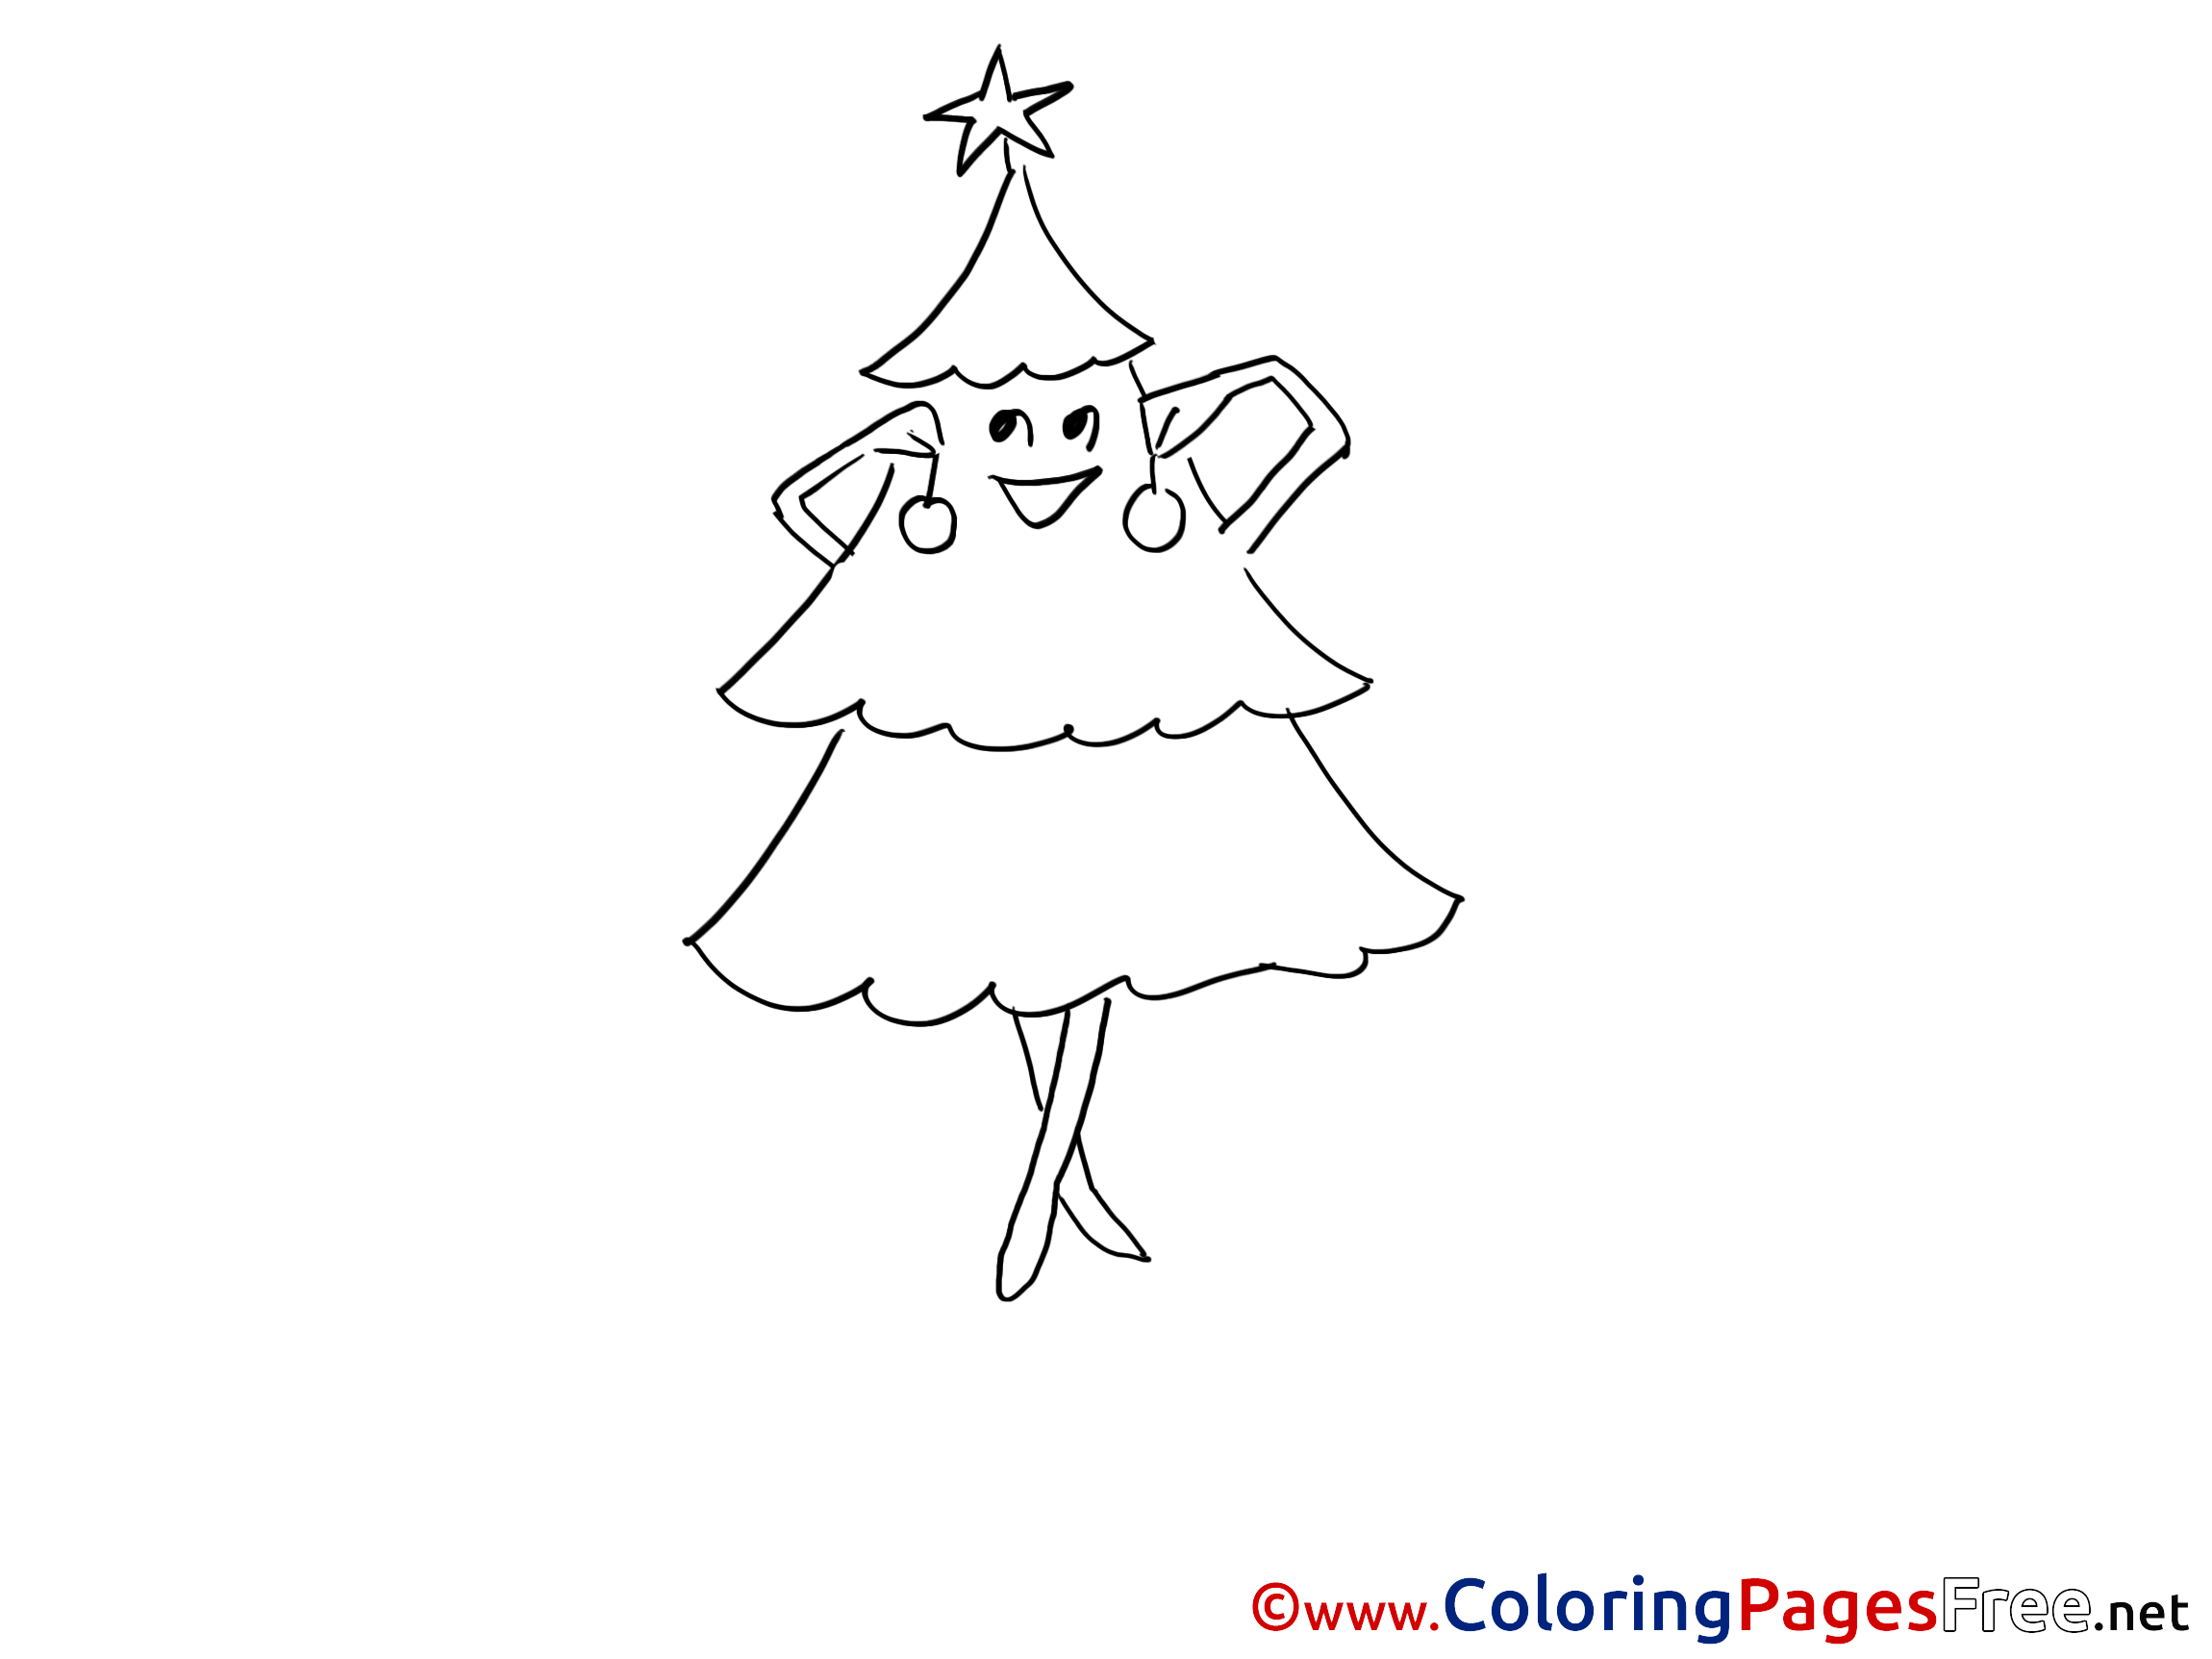 Childrens winter colouring pictures - Childrens Winter Colouring Pictures 27